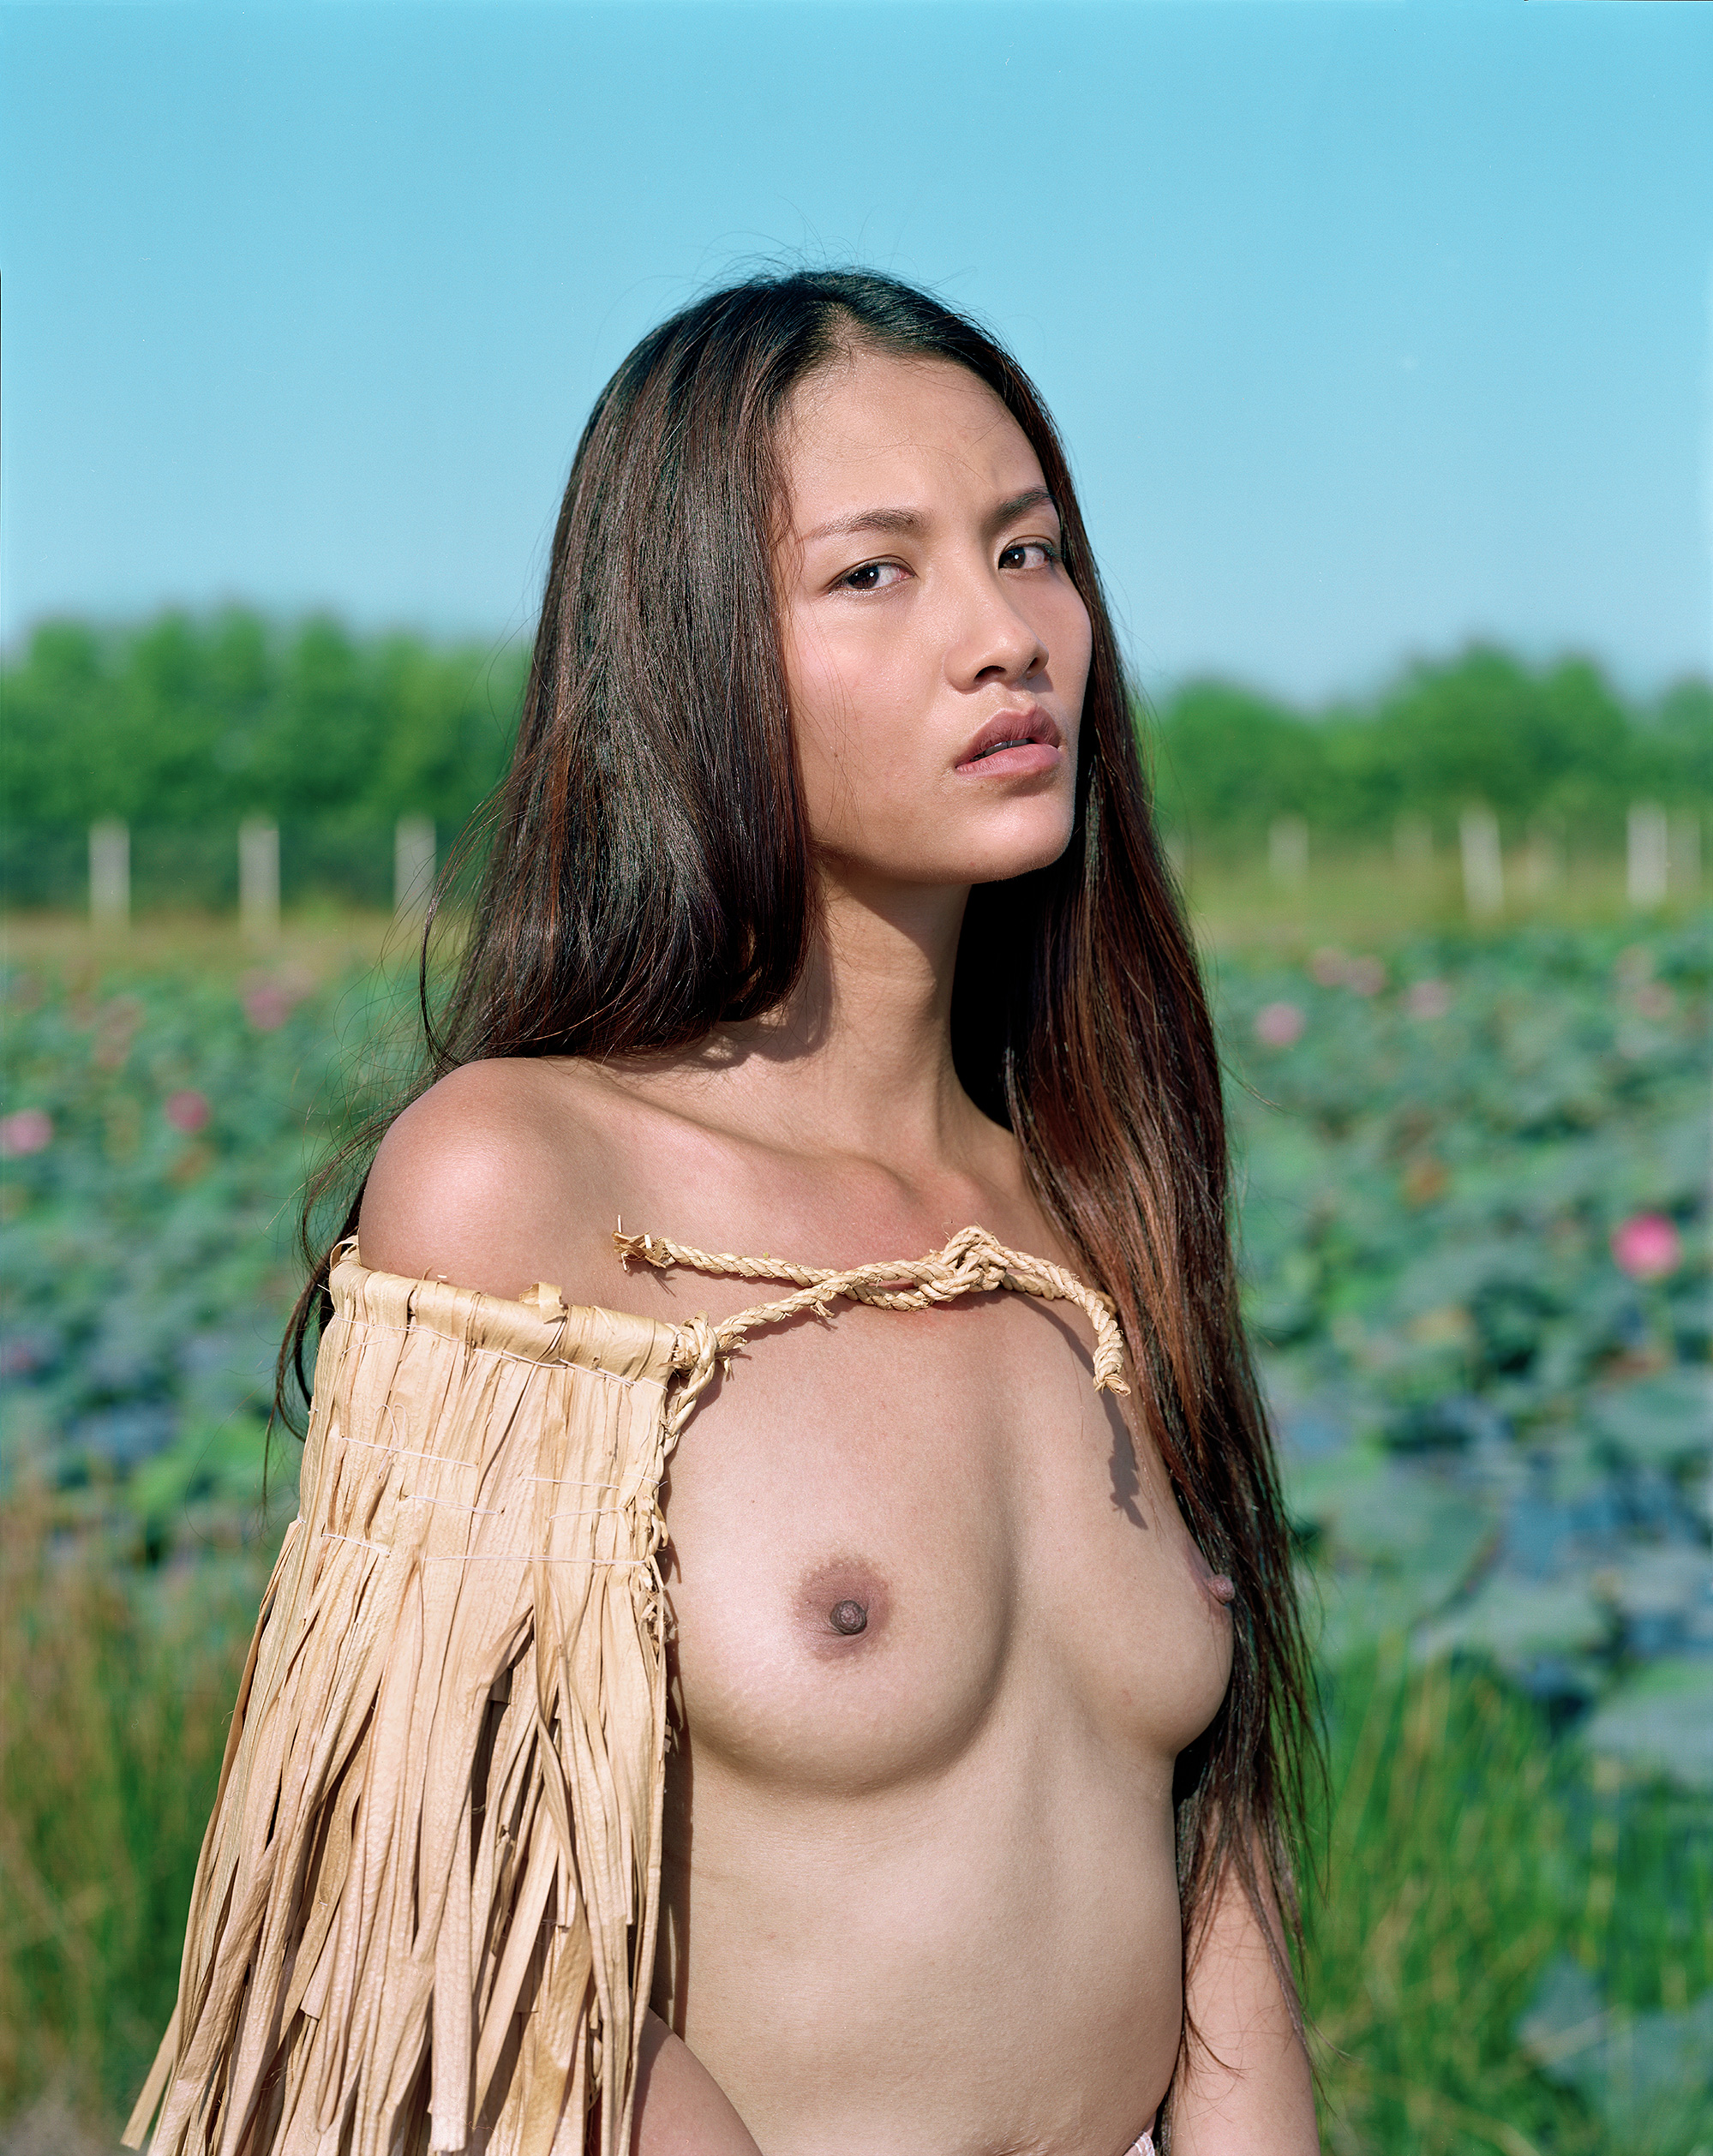 Phượng,   from the '{City of Virgins}' series. sRGB1966 ( Collection de l'artiste ) 127.63 x 153.03 cm.(50 1/4 x 60 1/4 inch.)